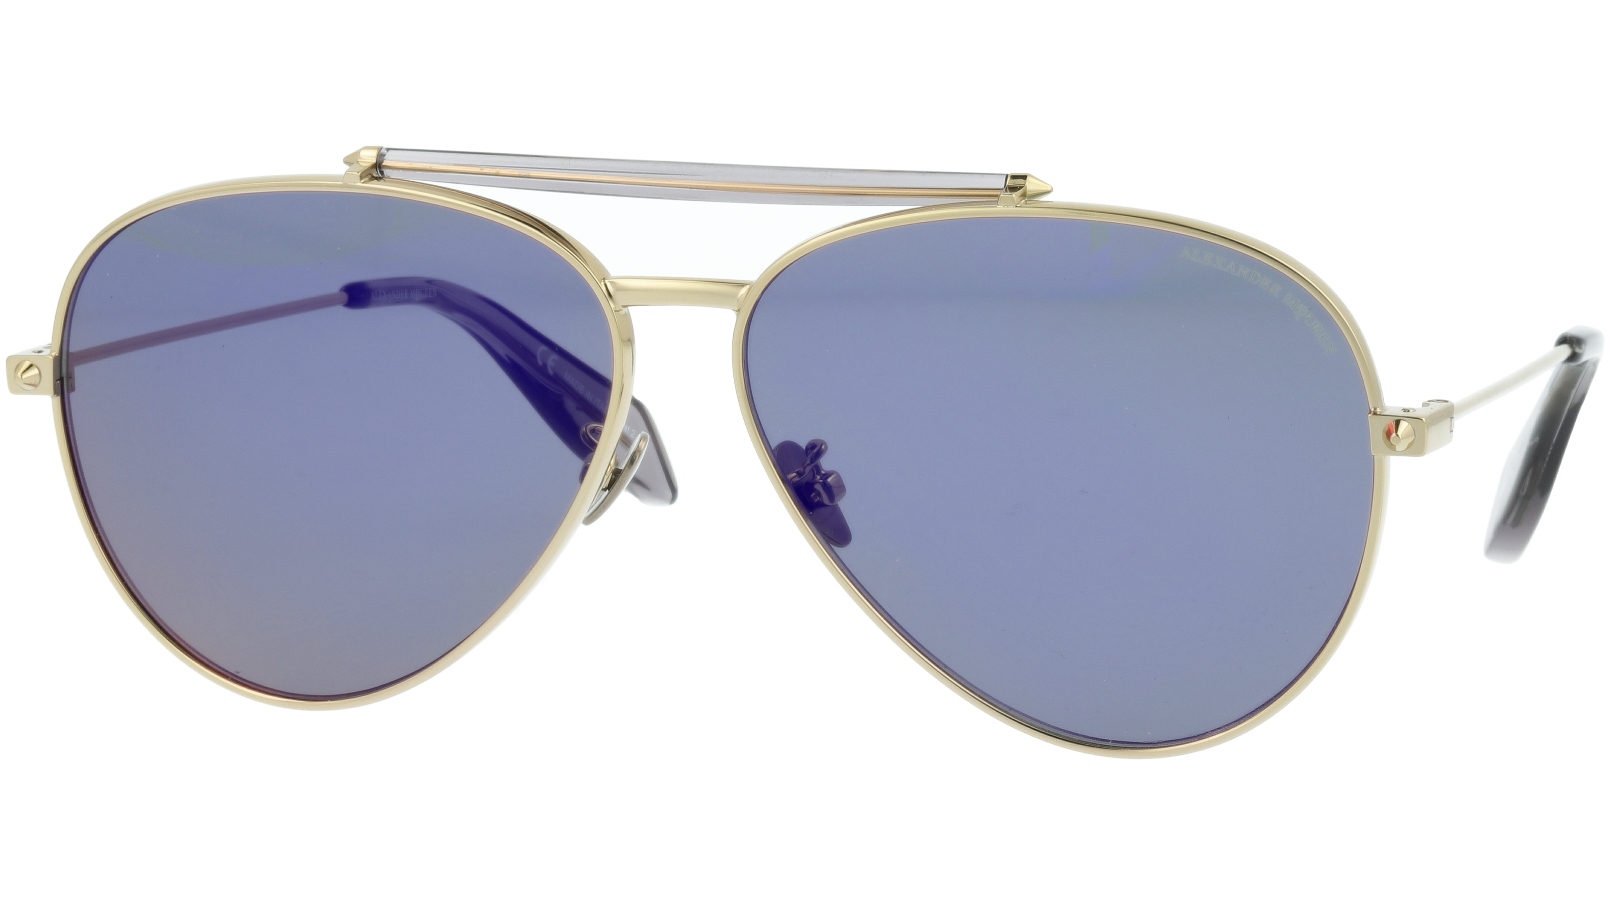 ALEXANDER MCQUEEN AM0057S 004 52 GOLD Sunglasses